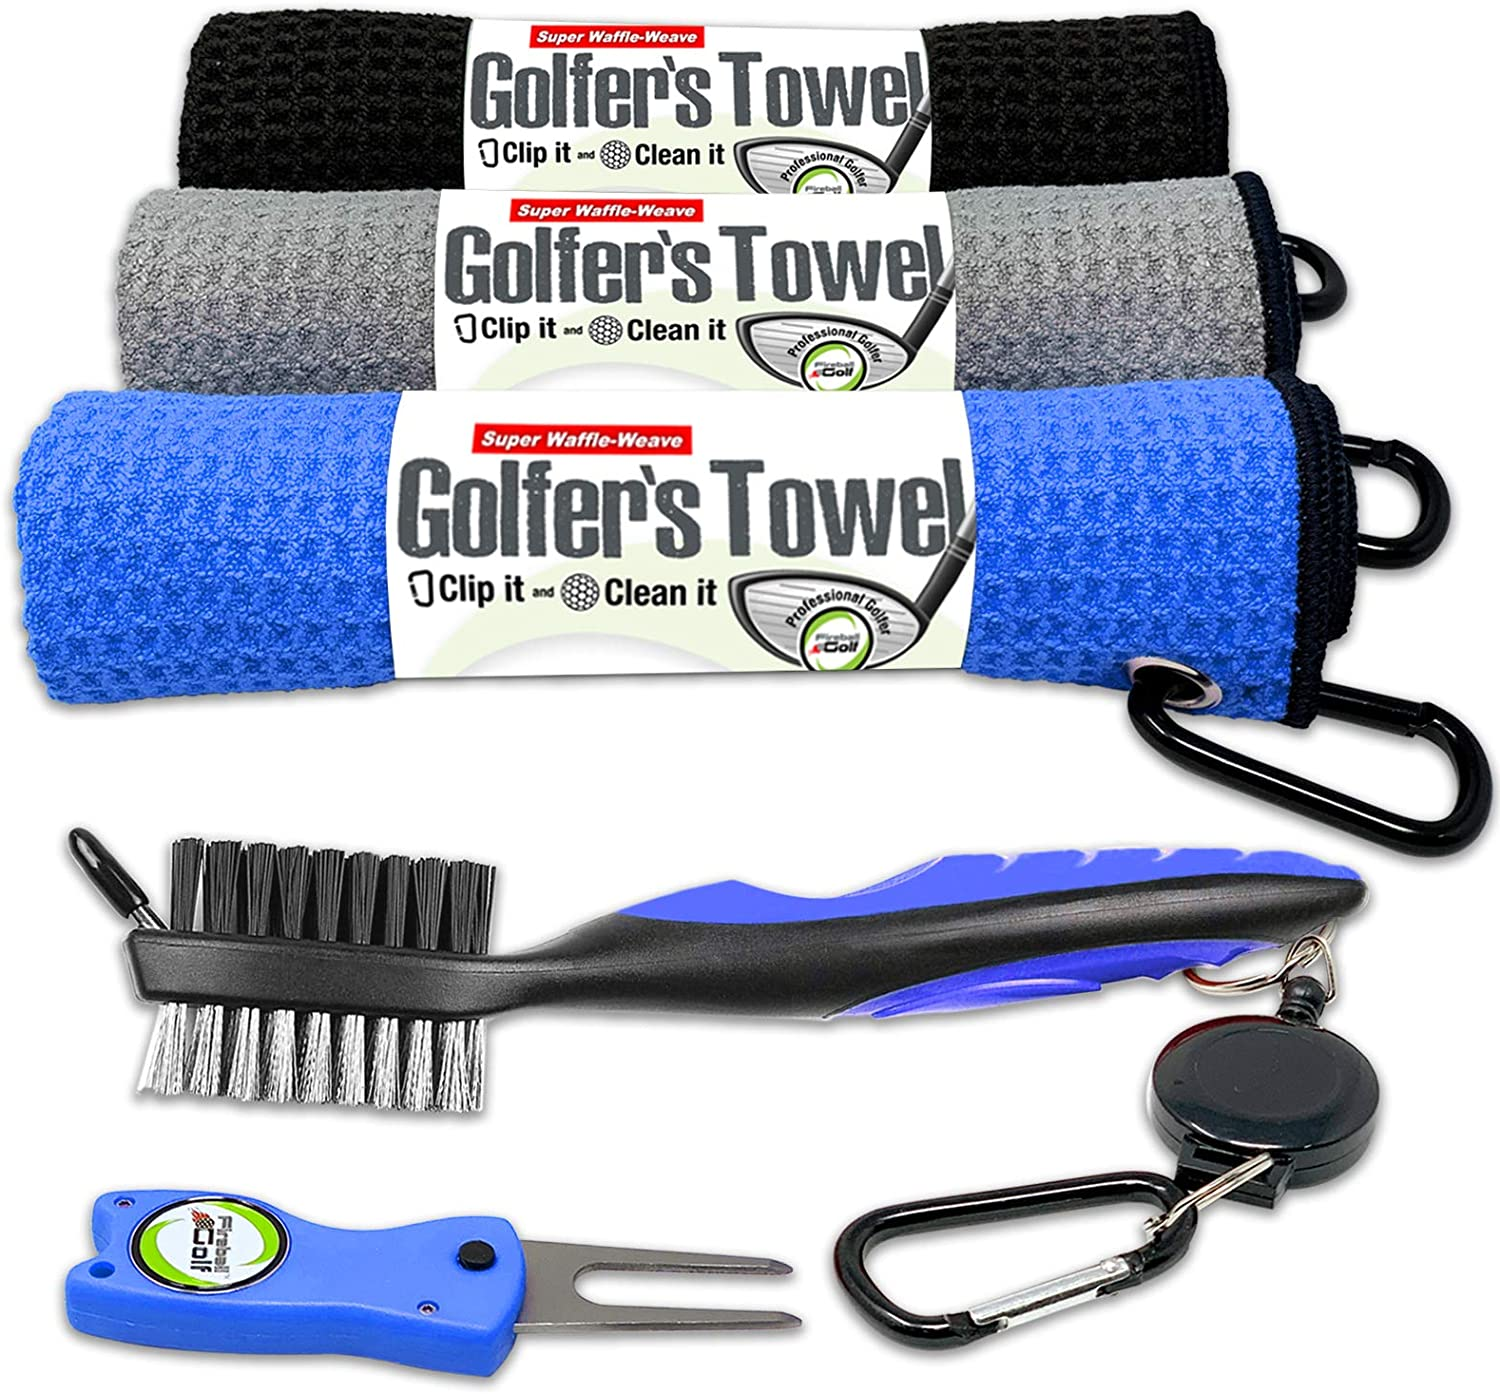 Fireball Golf Towel Gifts and Accessories Set (many colors) - 3 golf towels, golf divot tool, ball marker, and golf cleaning brush, golf gifts for men, women, children